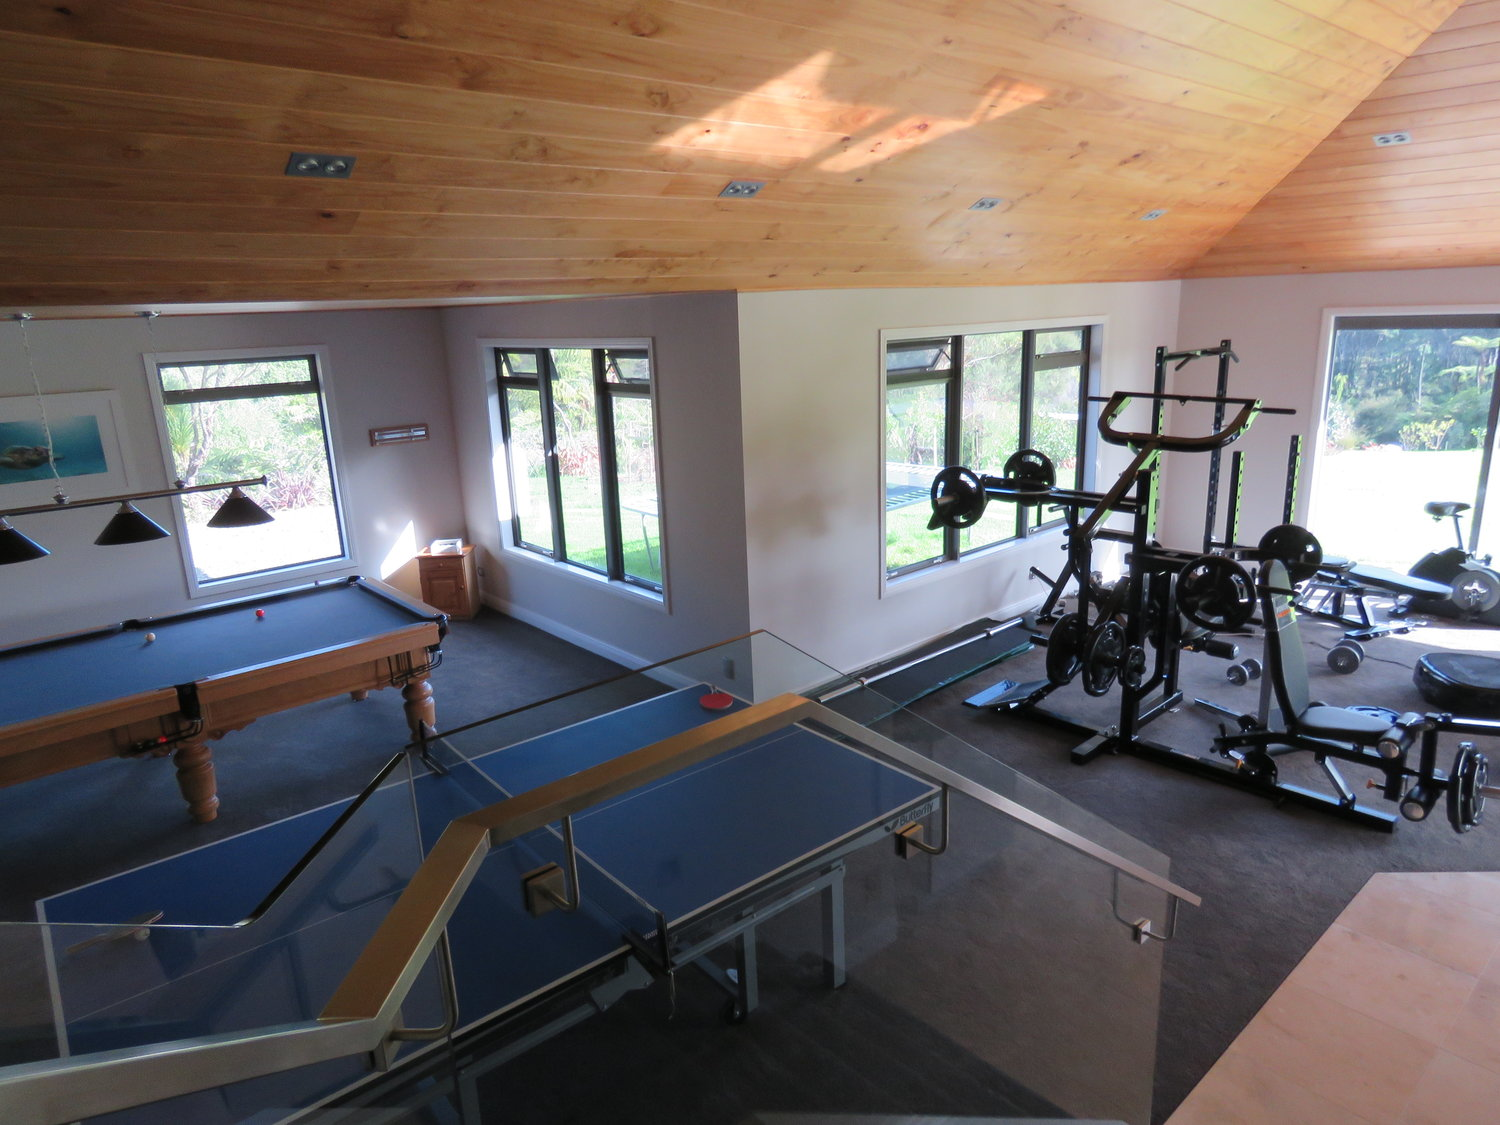 Albany Games room and gym